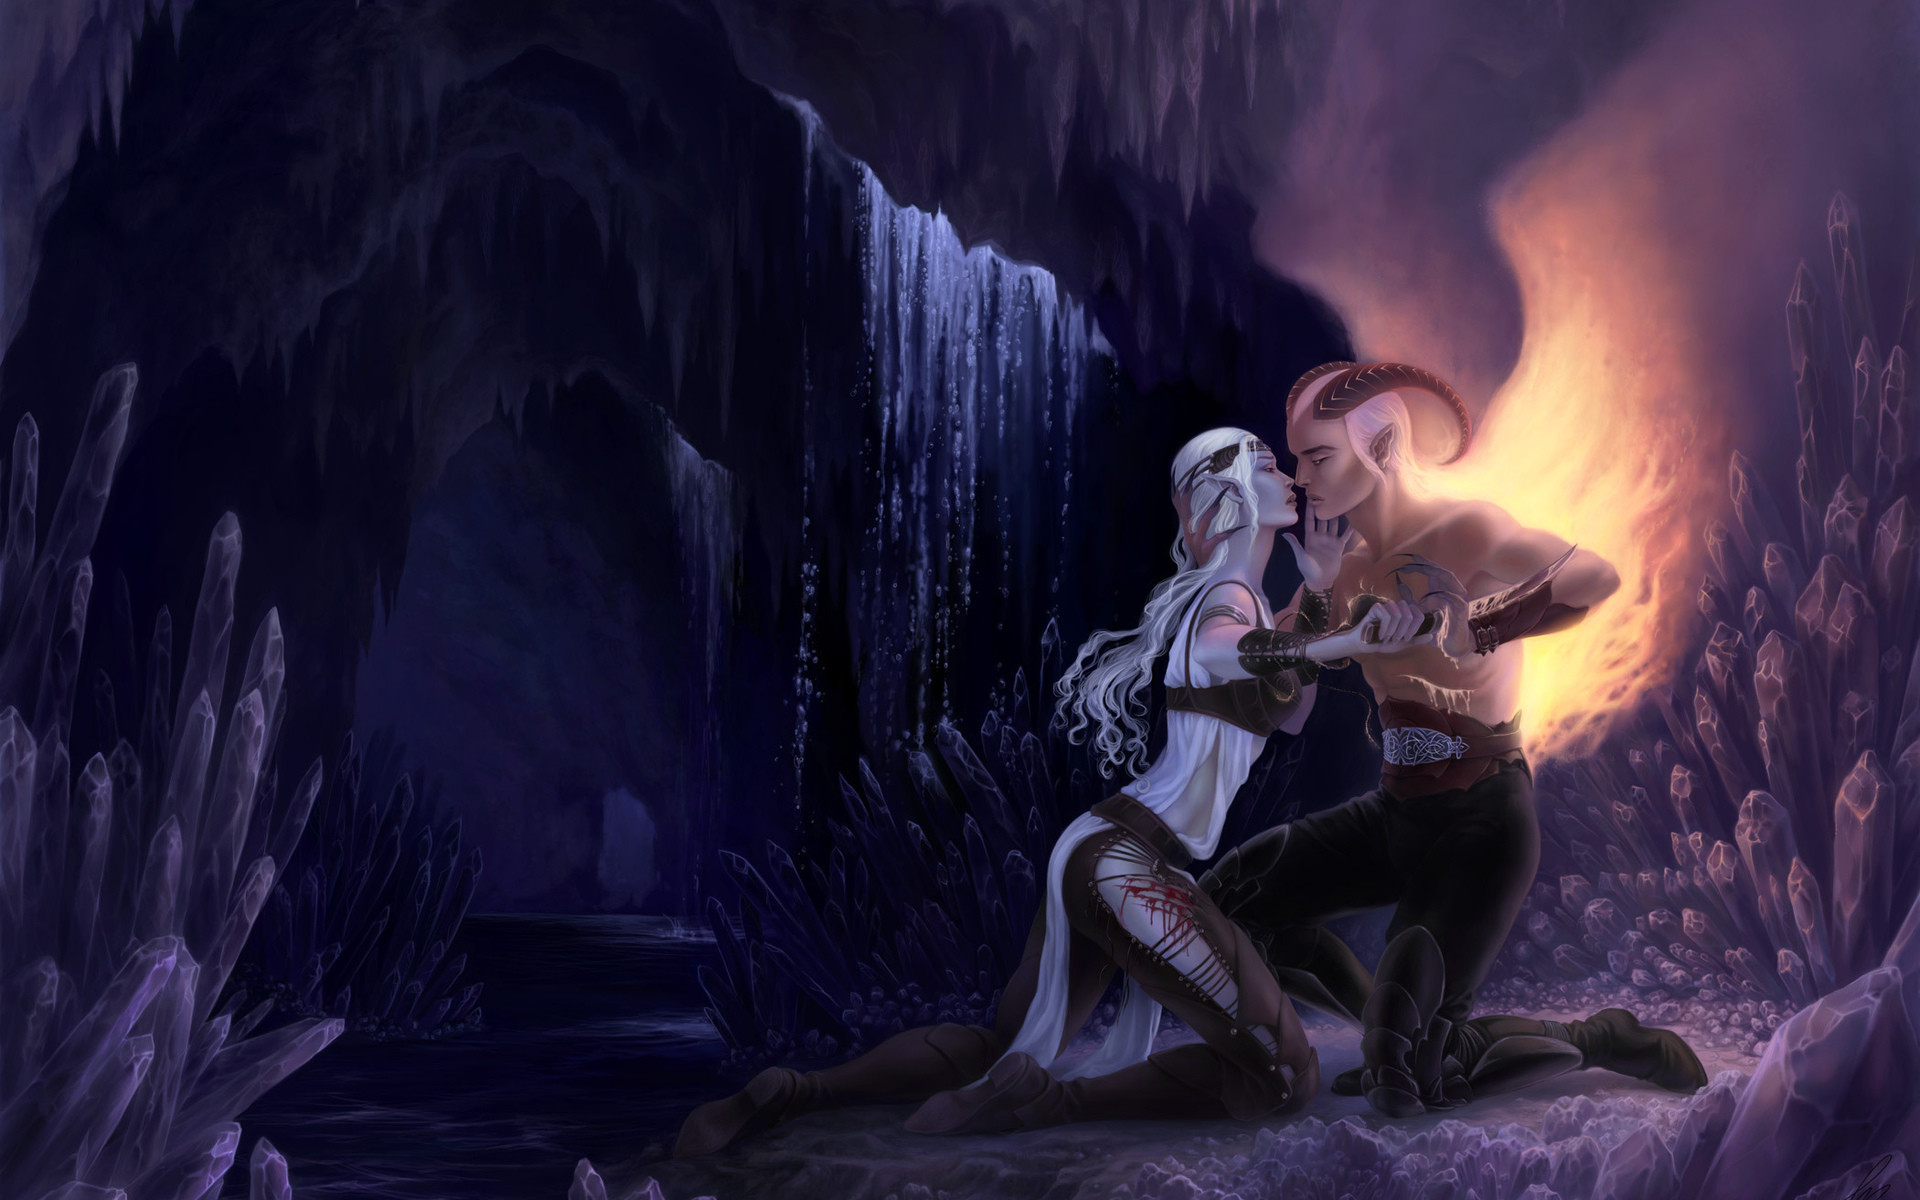 fantasy demon hell caves landscapes waterfall crystal love romance emotion  good evil fire flames mountains cliff